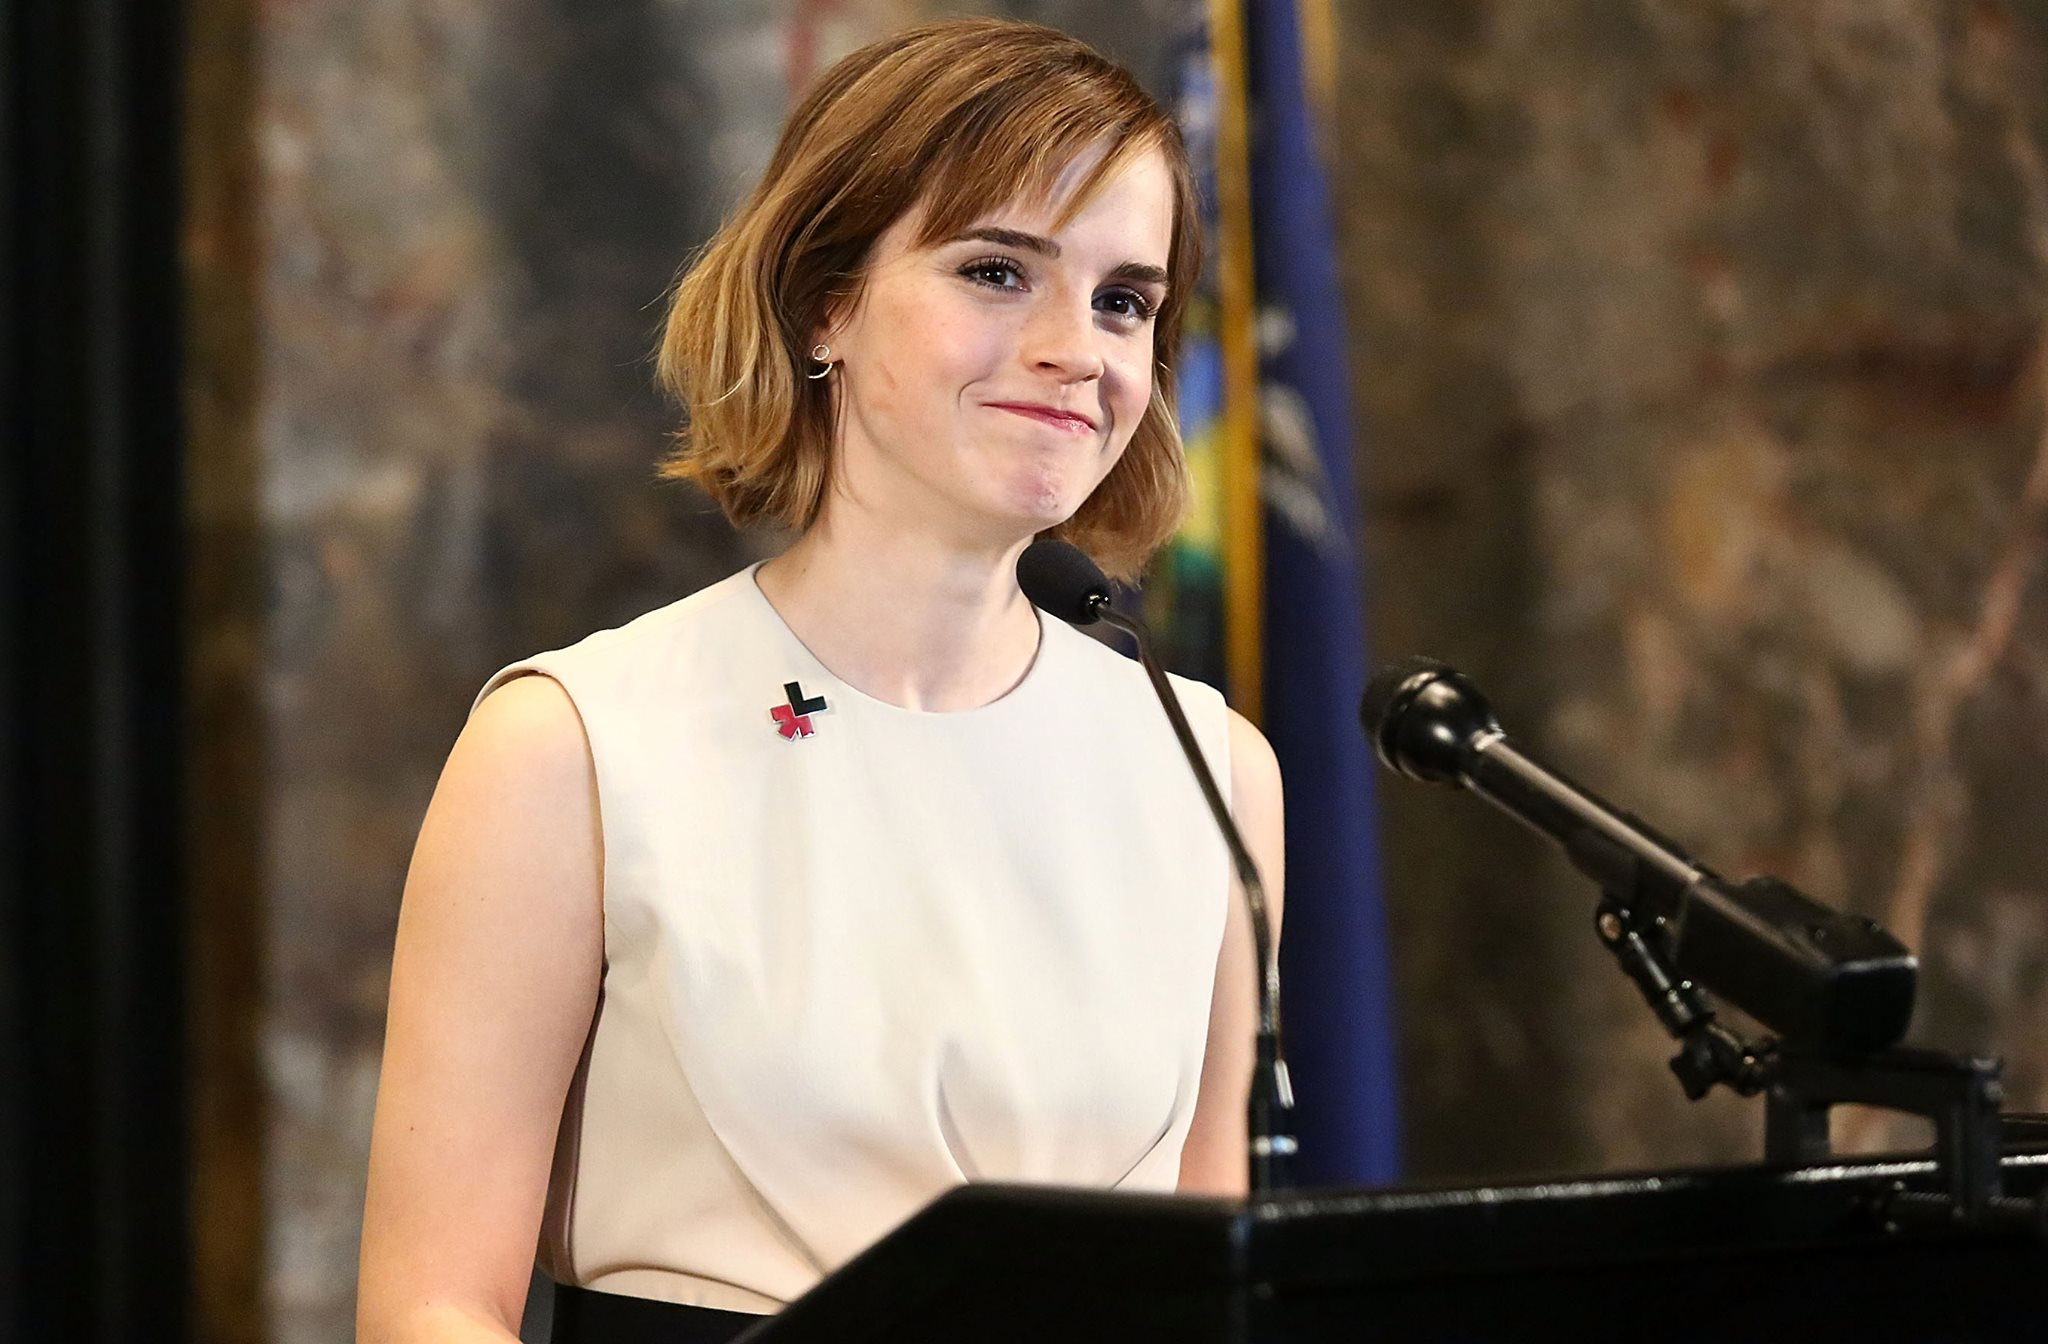 14393981 10157582987335604 1031011161 o Emma Watson Breasts And Nipples Pics Surface Online, Lawyers Not Happy